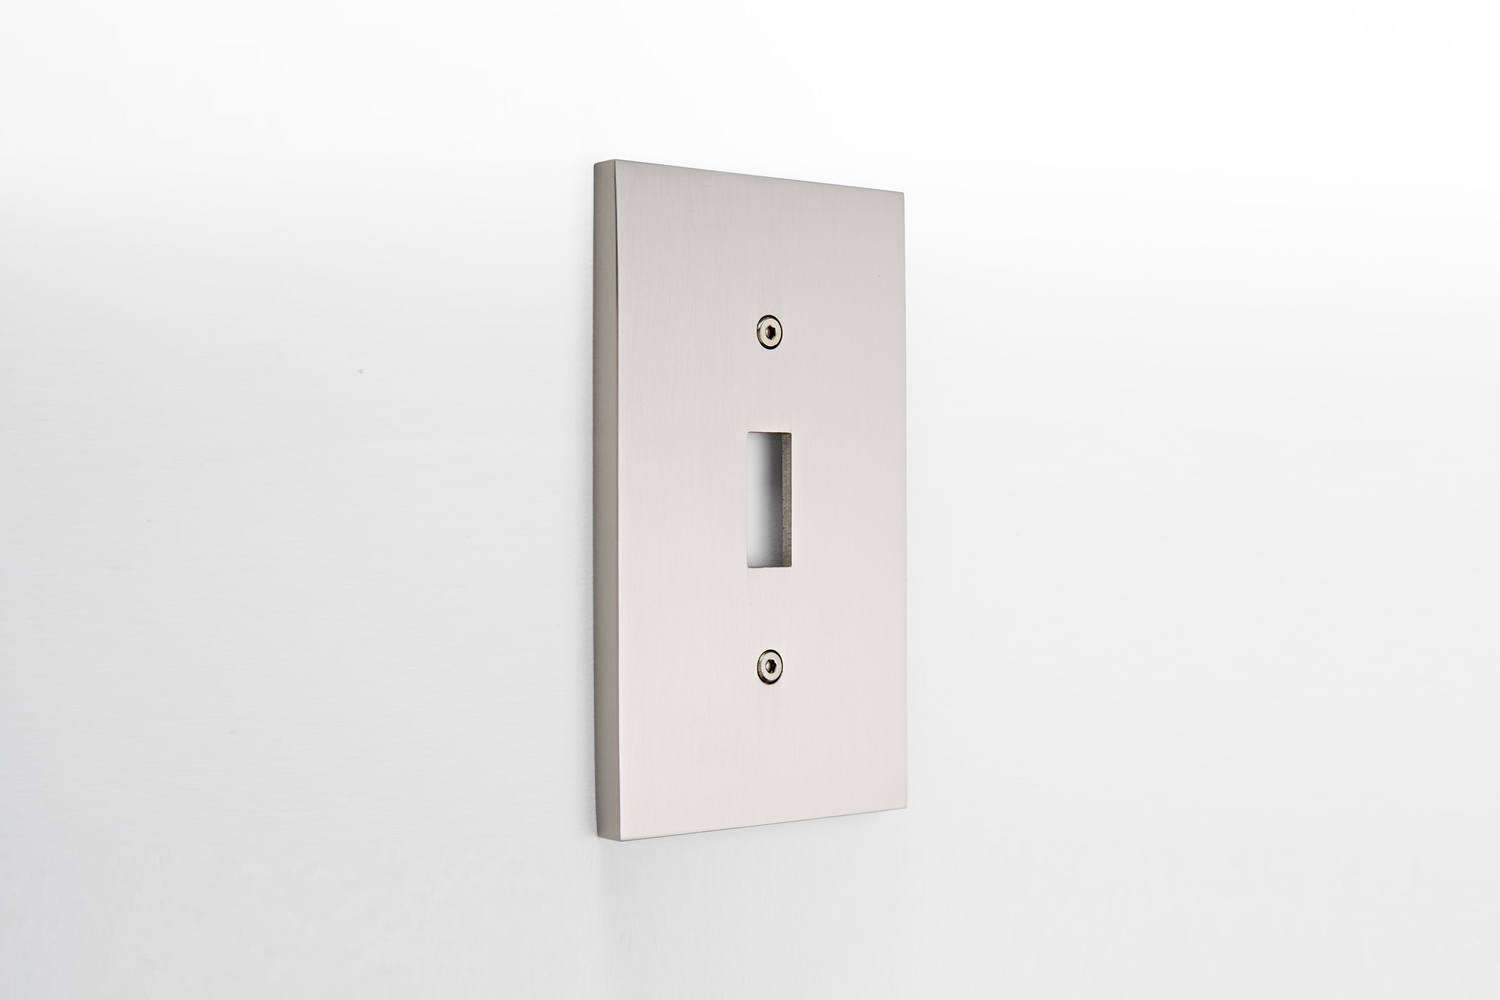 10 Easy Pieces Switch Plate Covers, Bathroom Light Switch Covers